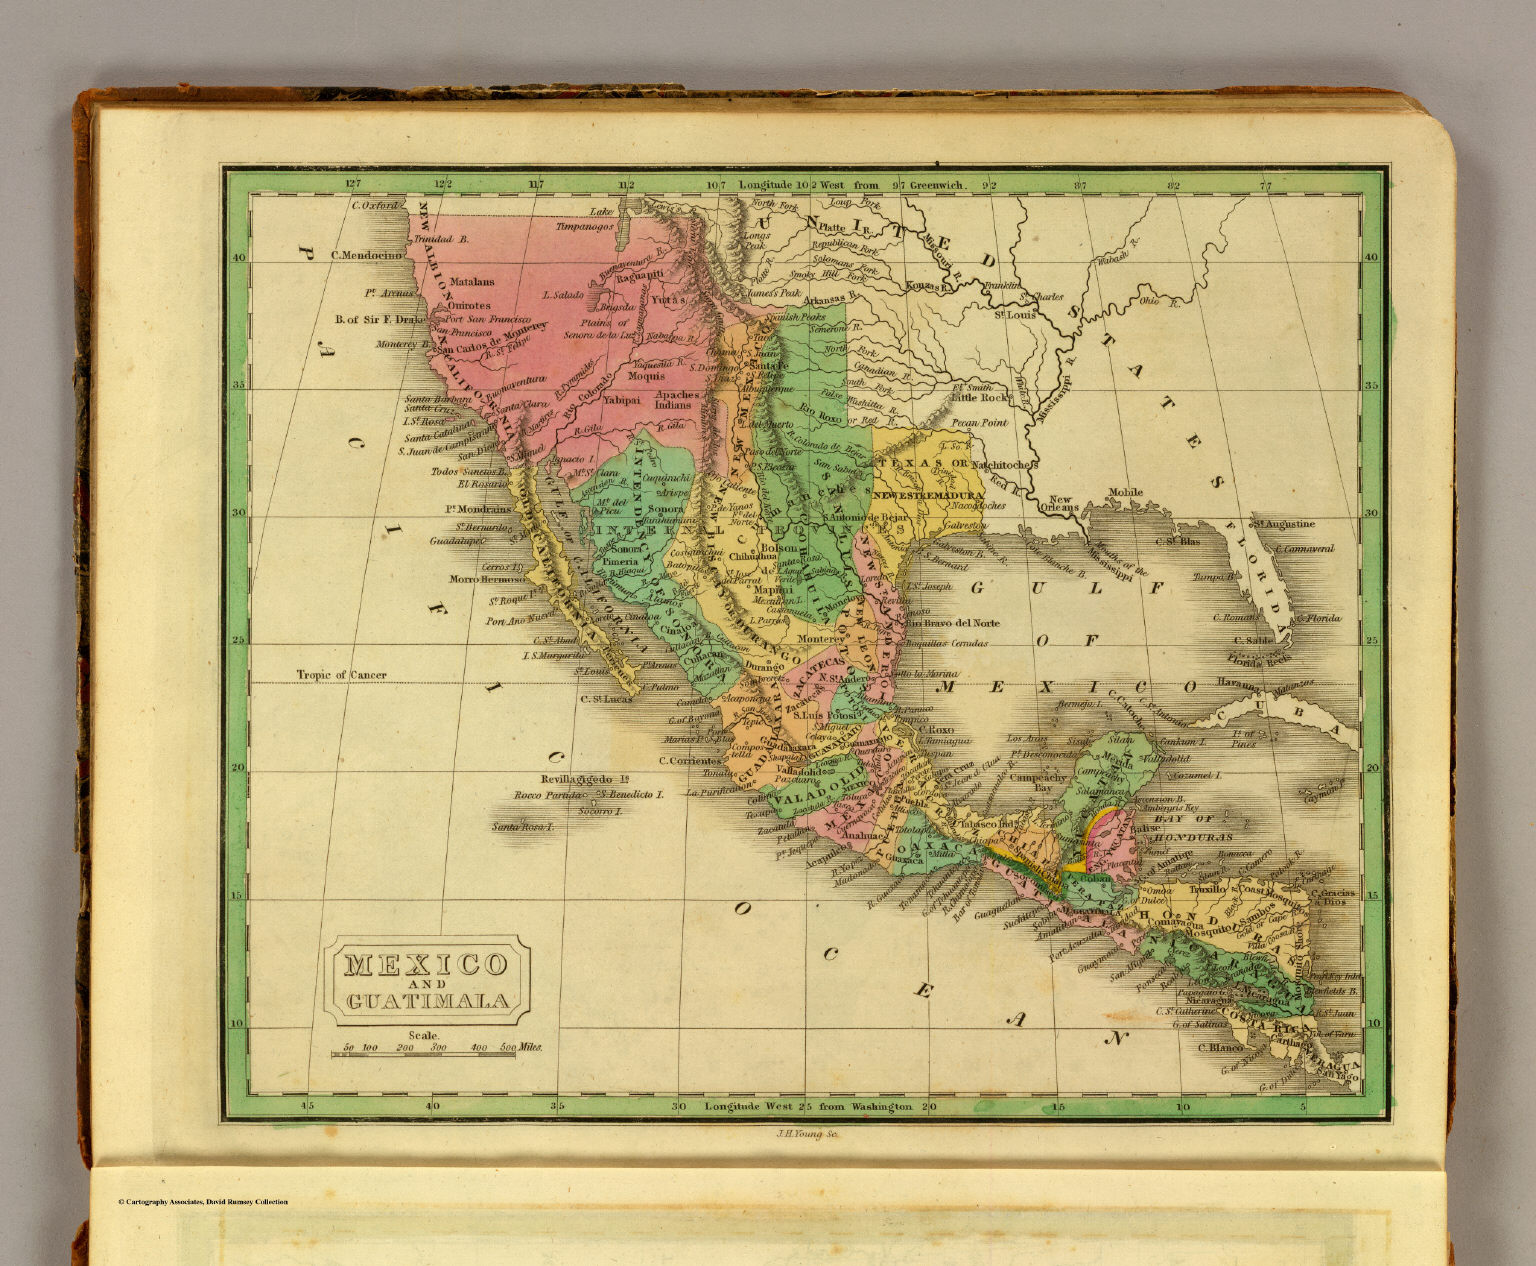 Mexico Guatimala David Rumsey Historical Map Collection